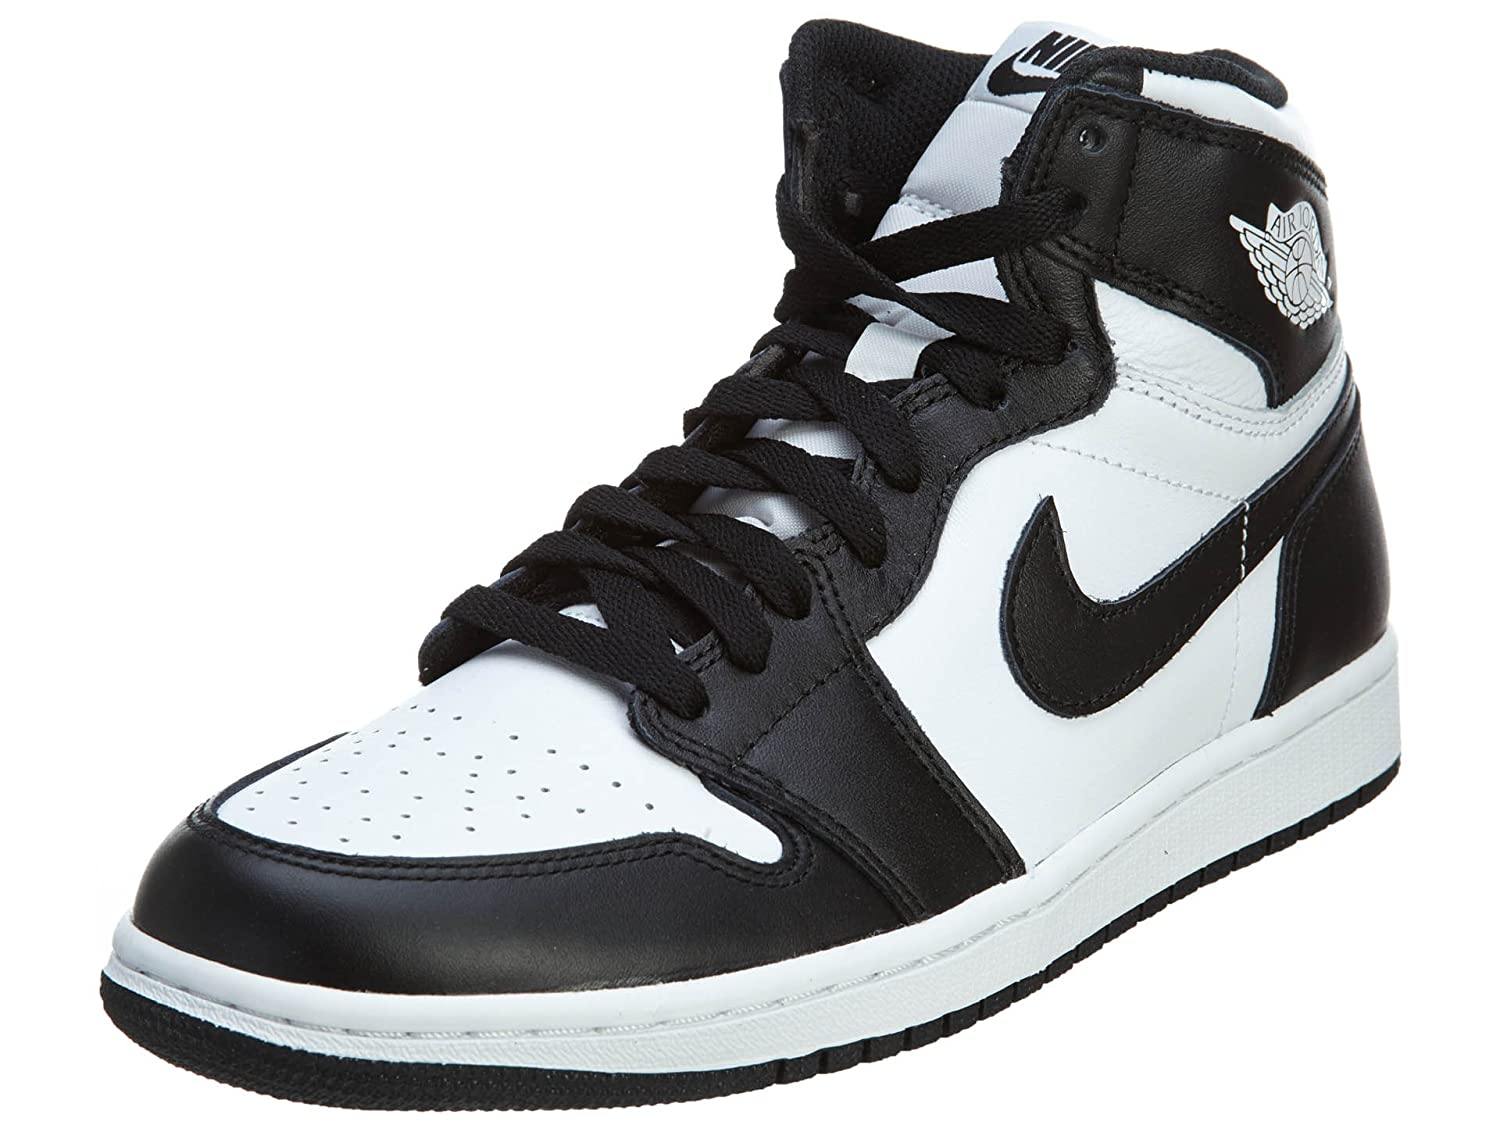 NIKE(ナイキ)/AIR JORDAN 1 RETRO HIGH OG [BLACKWHITE-BLACK]